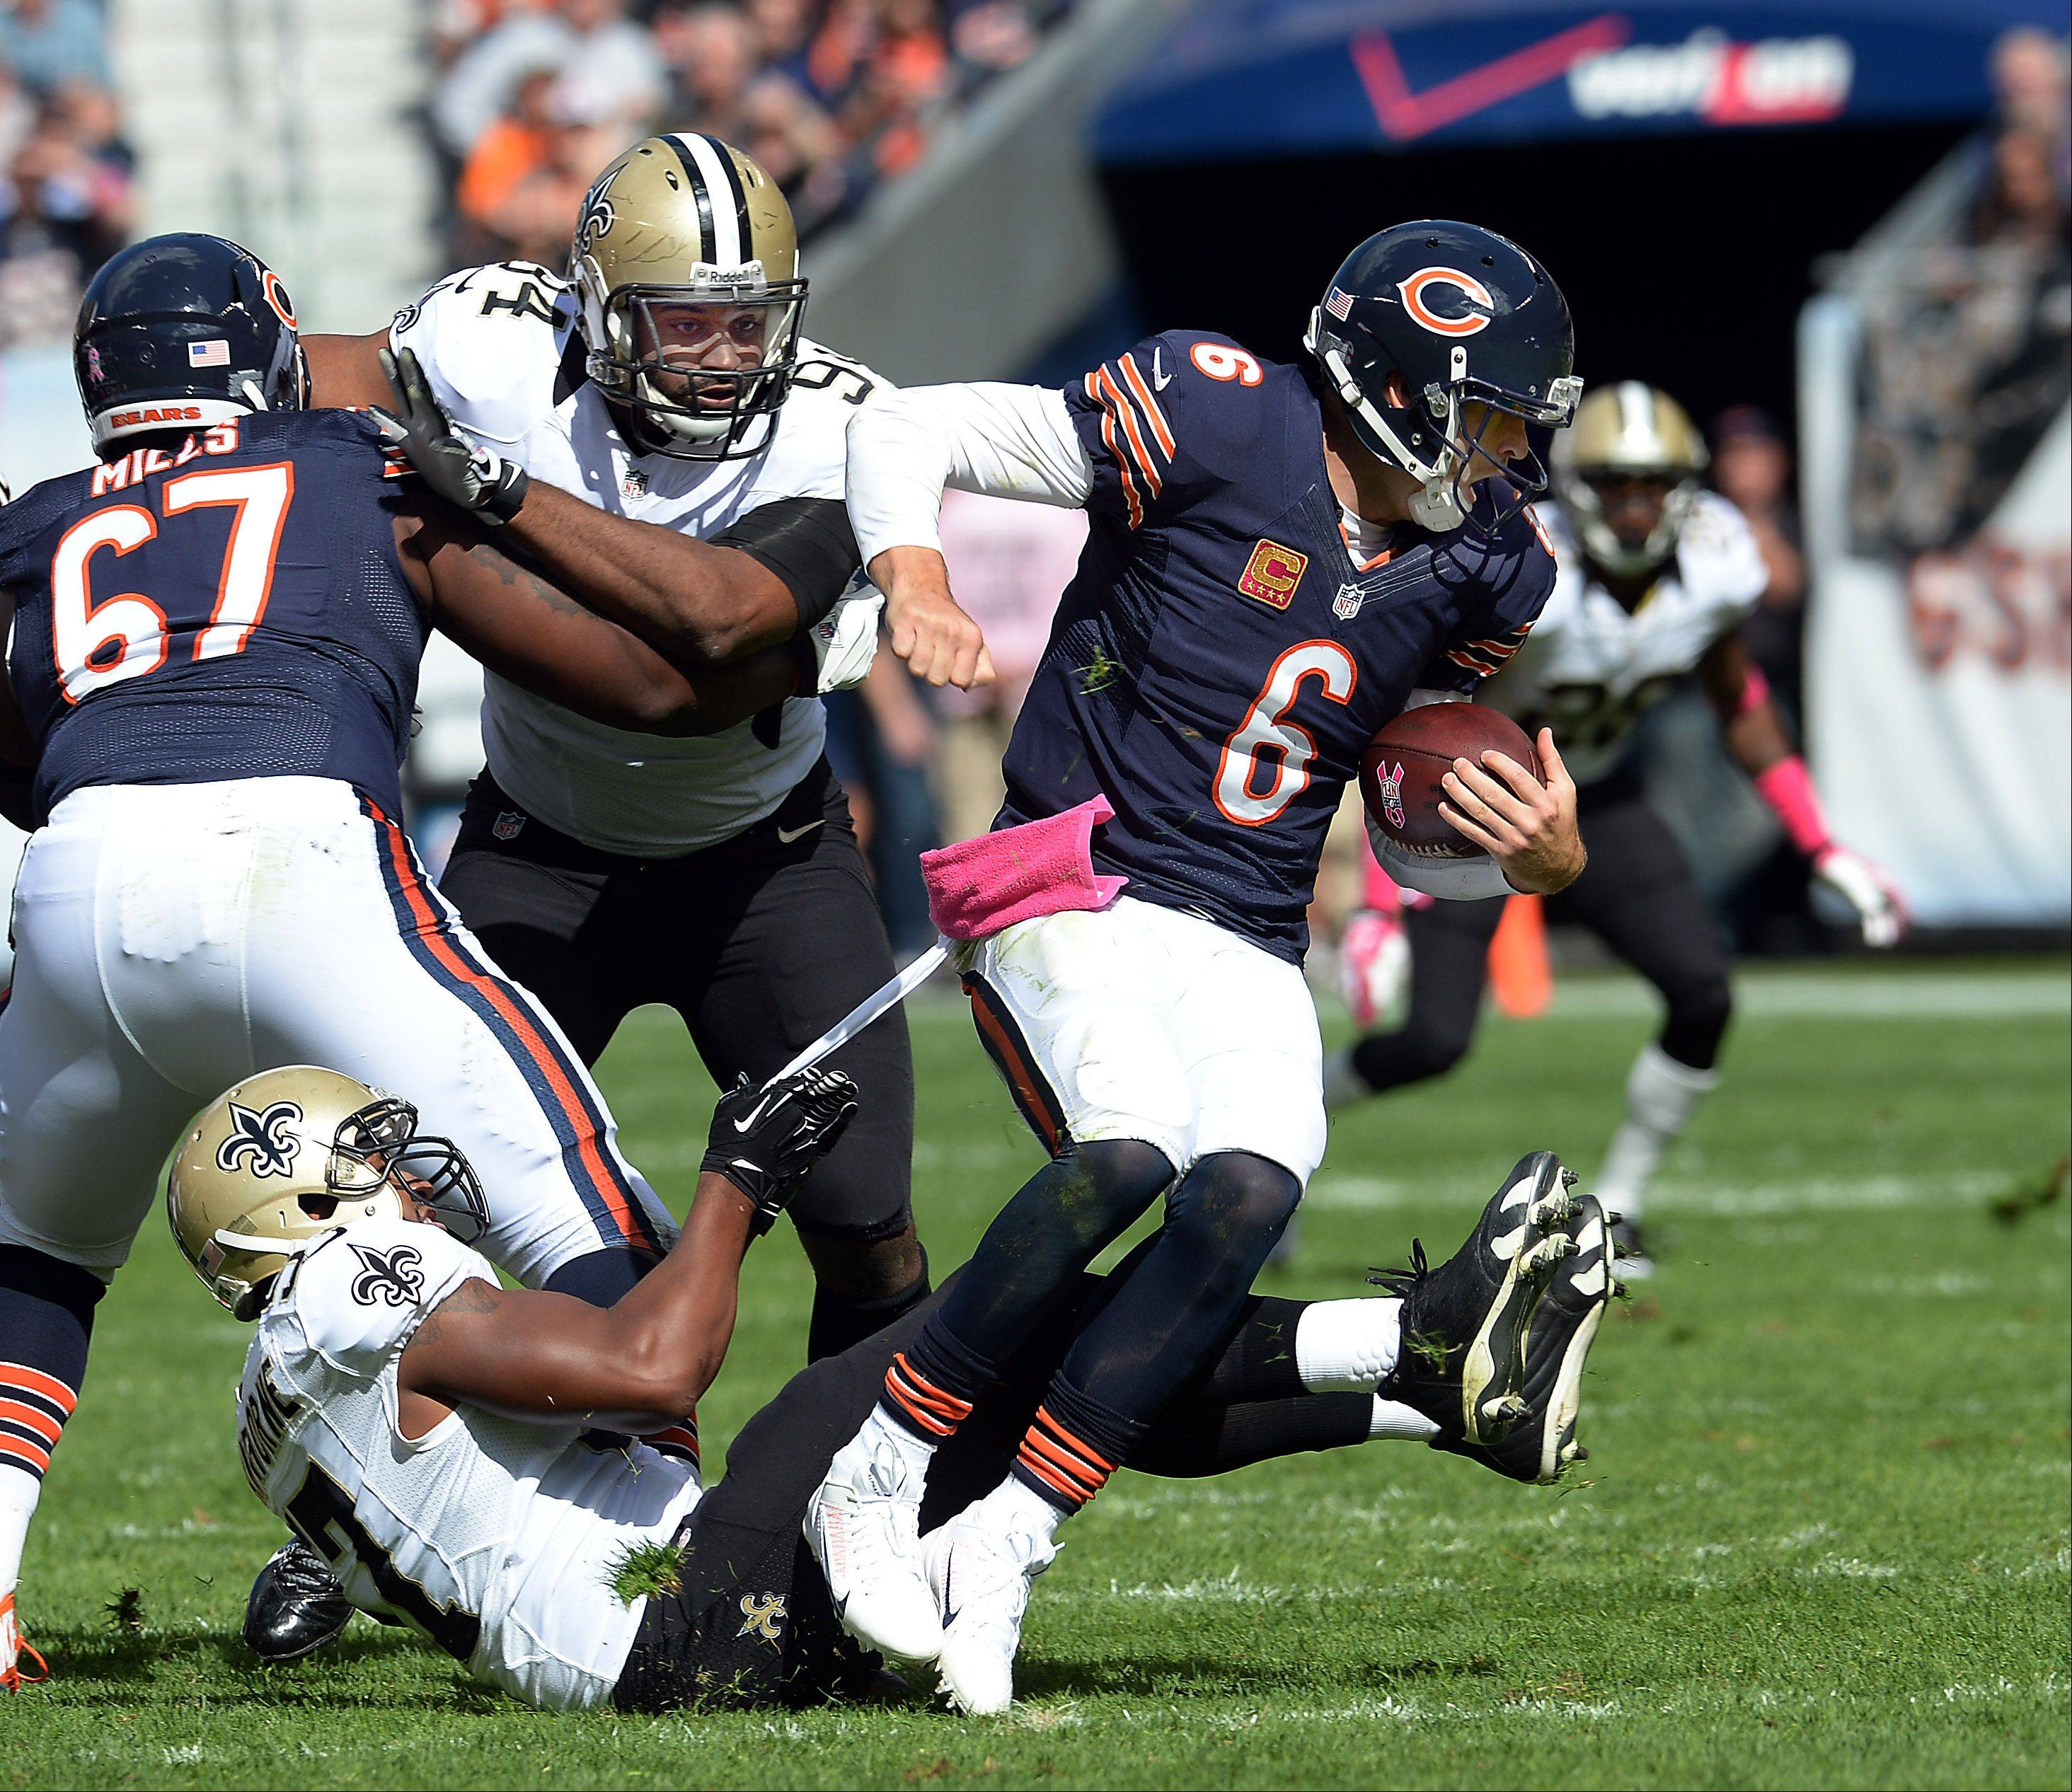 Bears quarterback Jay Cutler is sacked in the first half by Saints David Hawthorne.